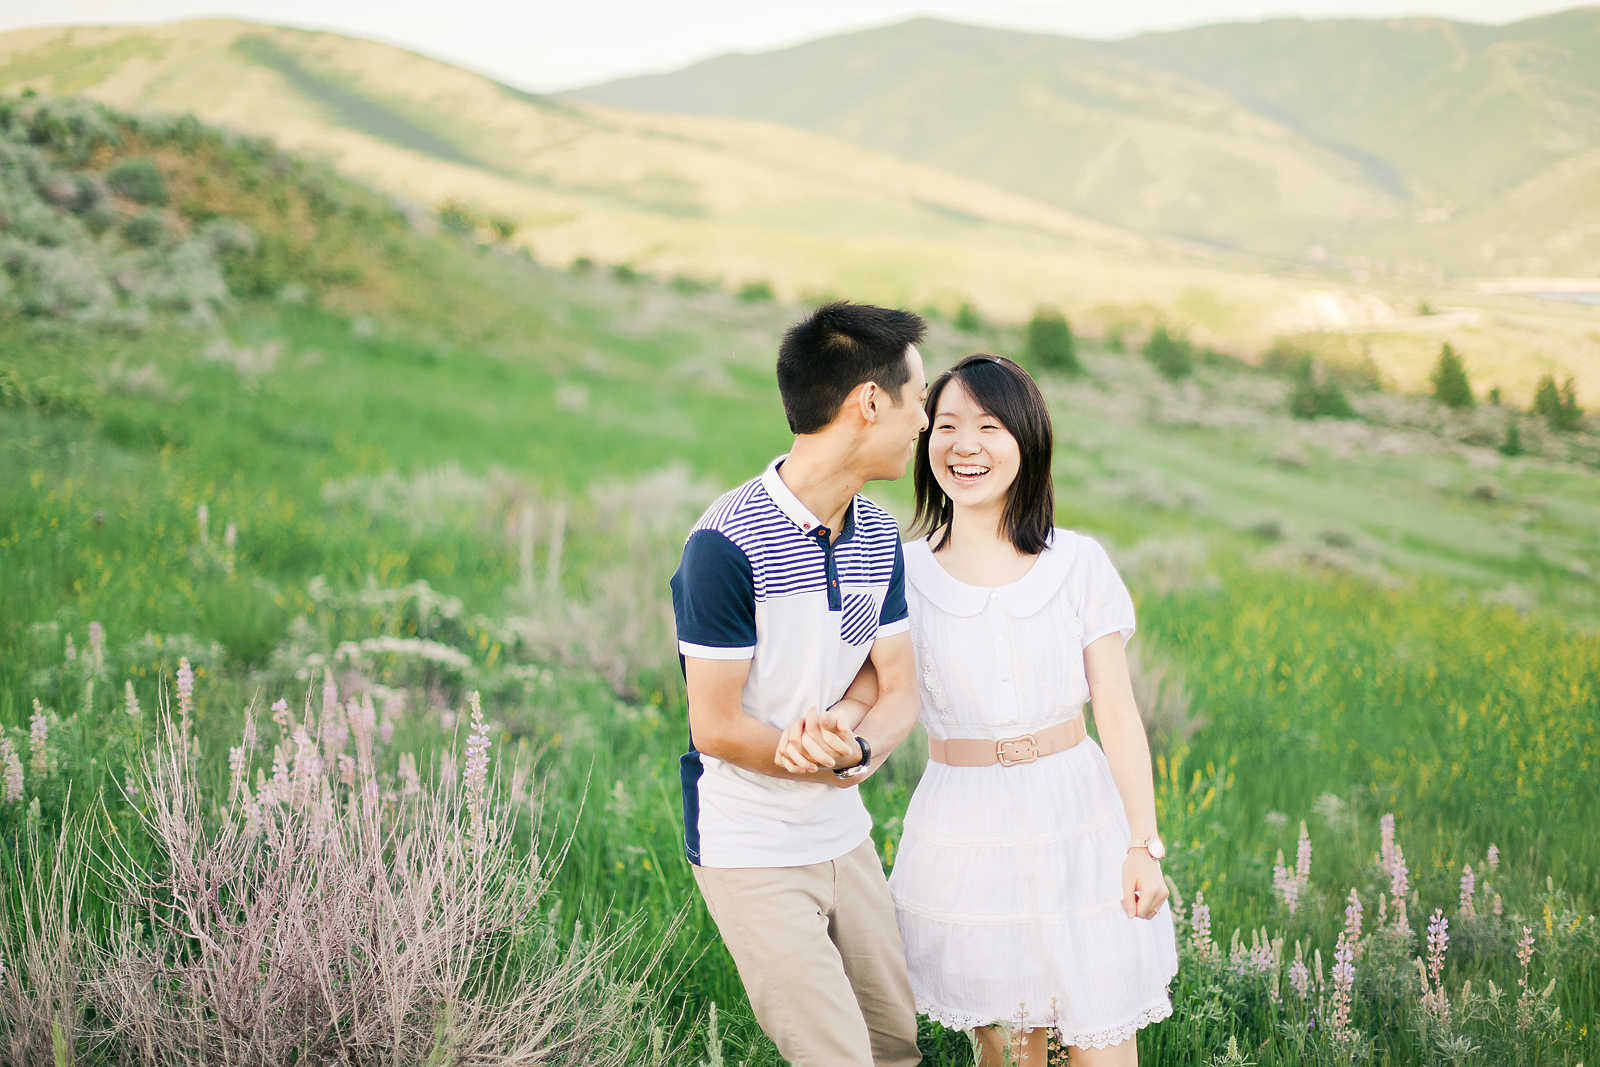 mountain_engagement_photography_004.jpg